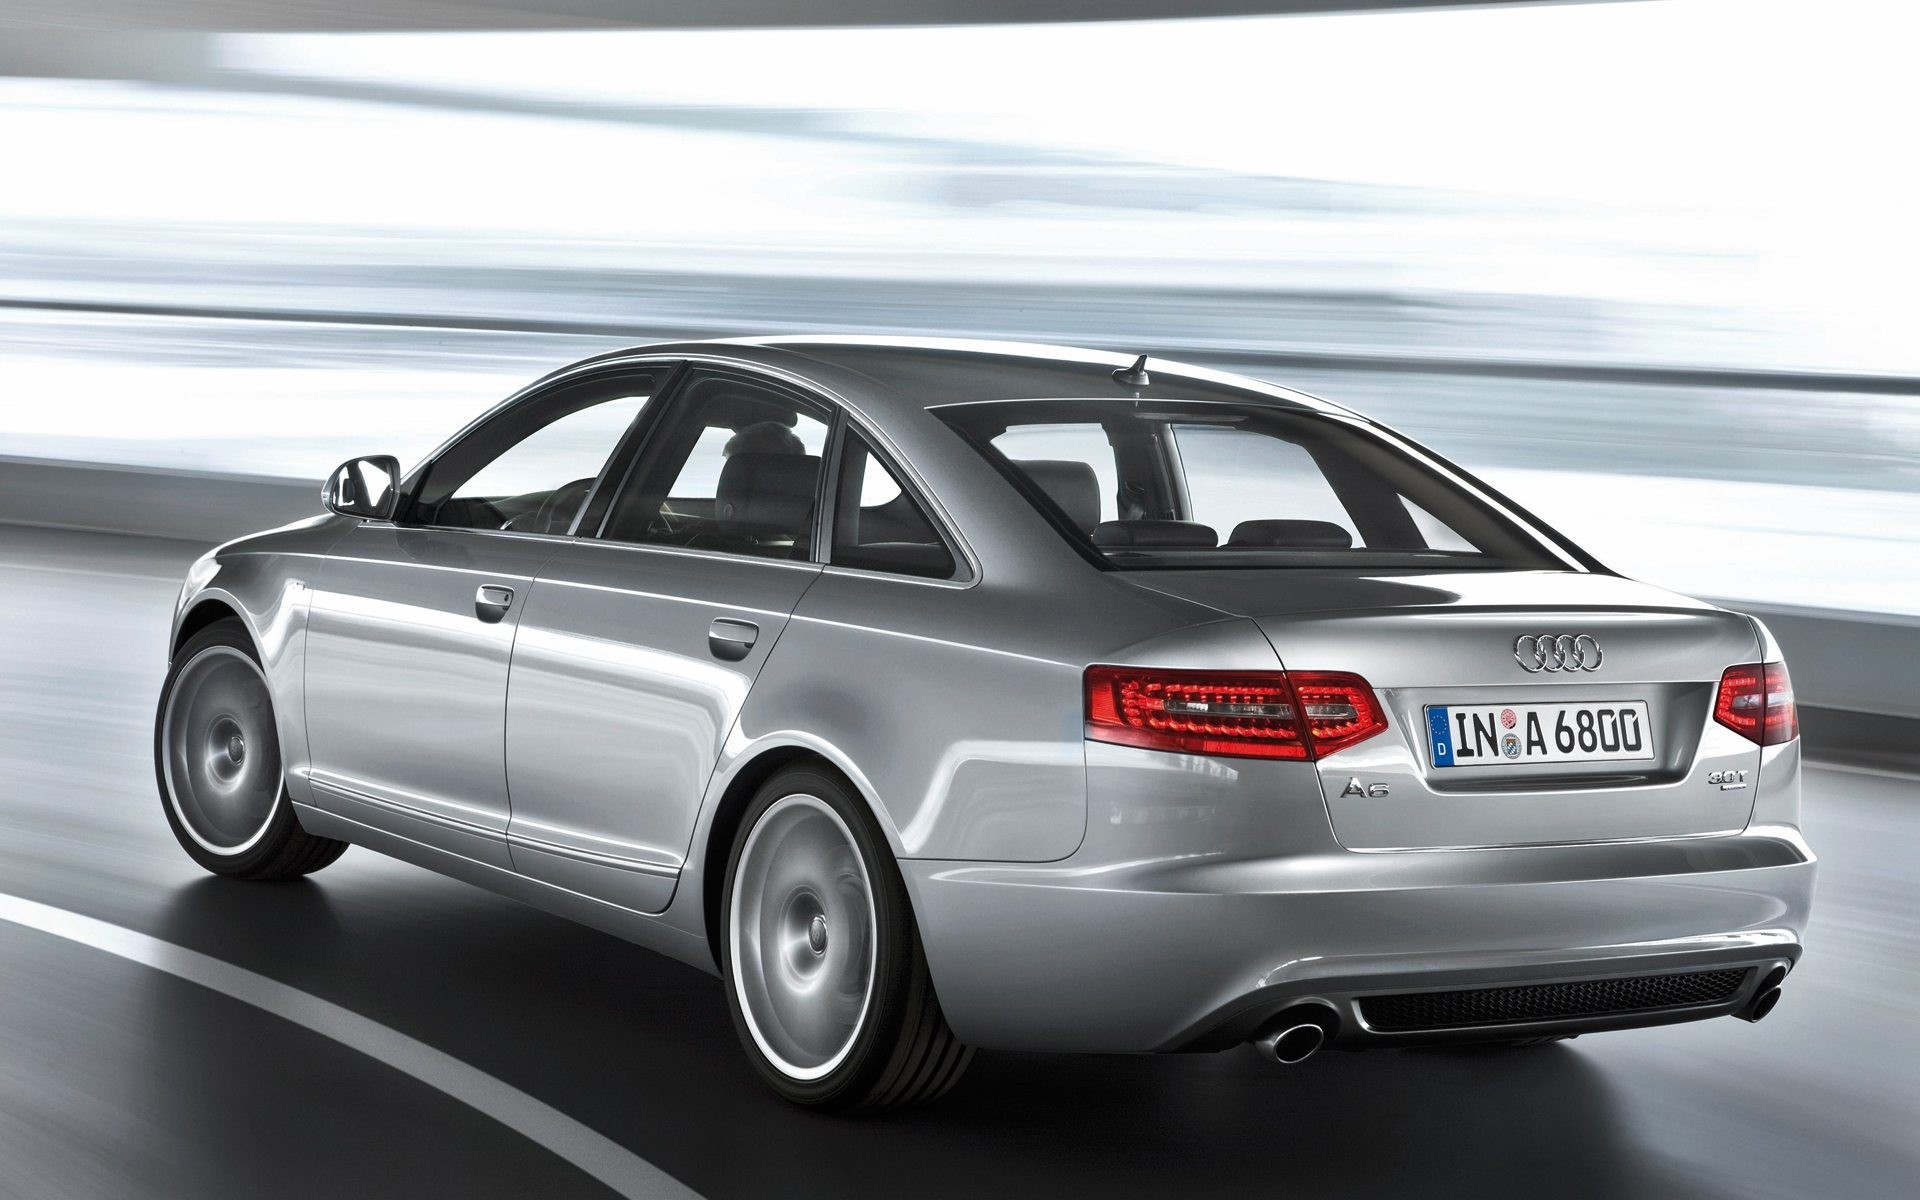 cars Audi A6 German HD Wallpaper